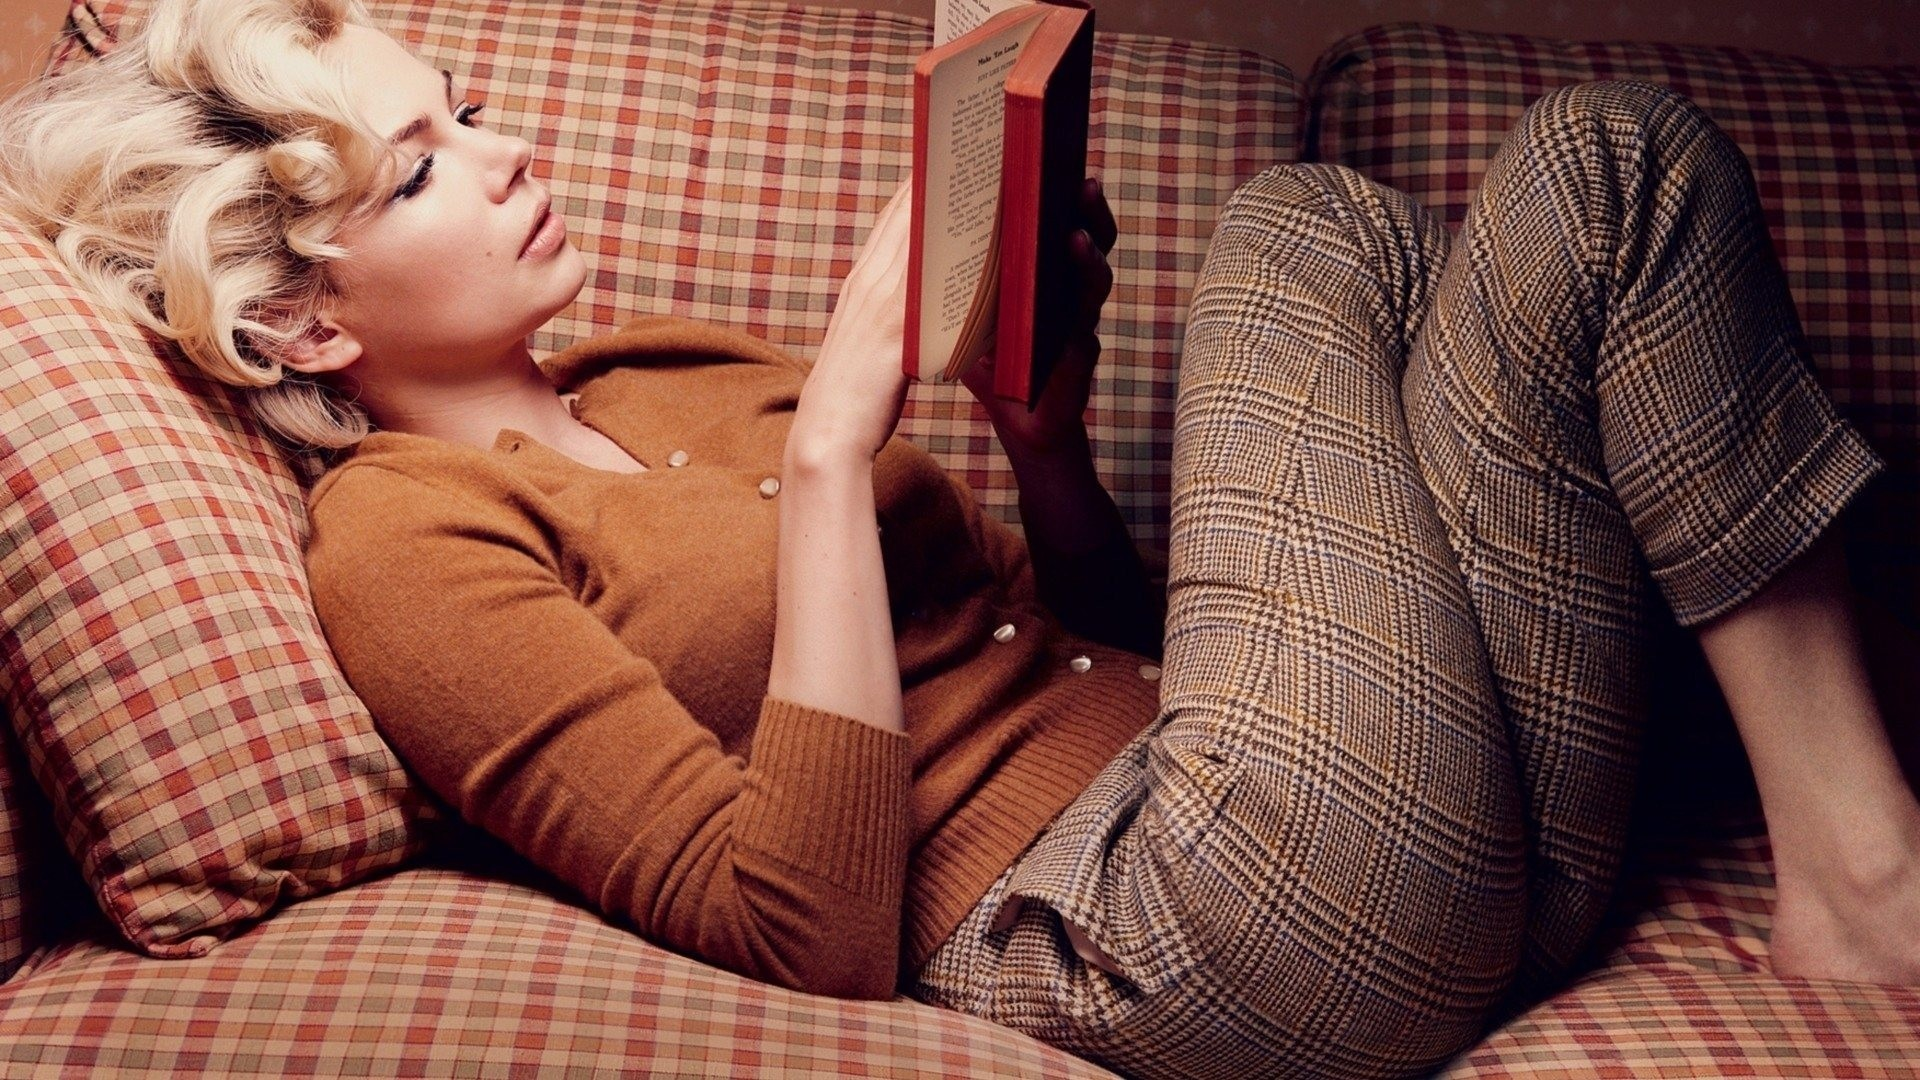 Girls___Beautyful_Girls_Girl_reading_a_book_lying_on_the_couch_043448_